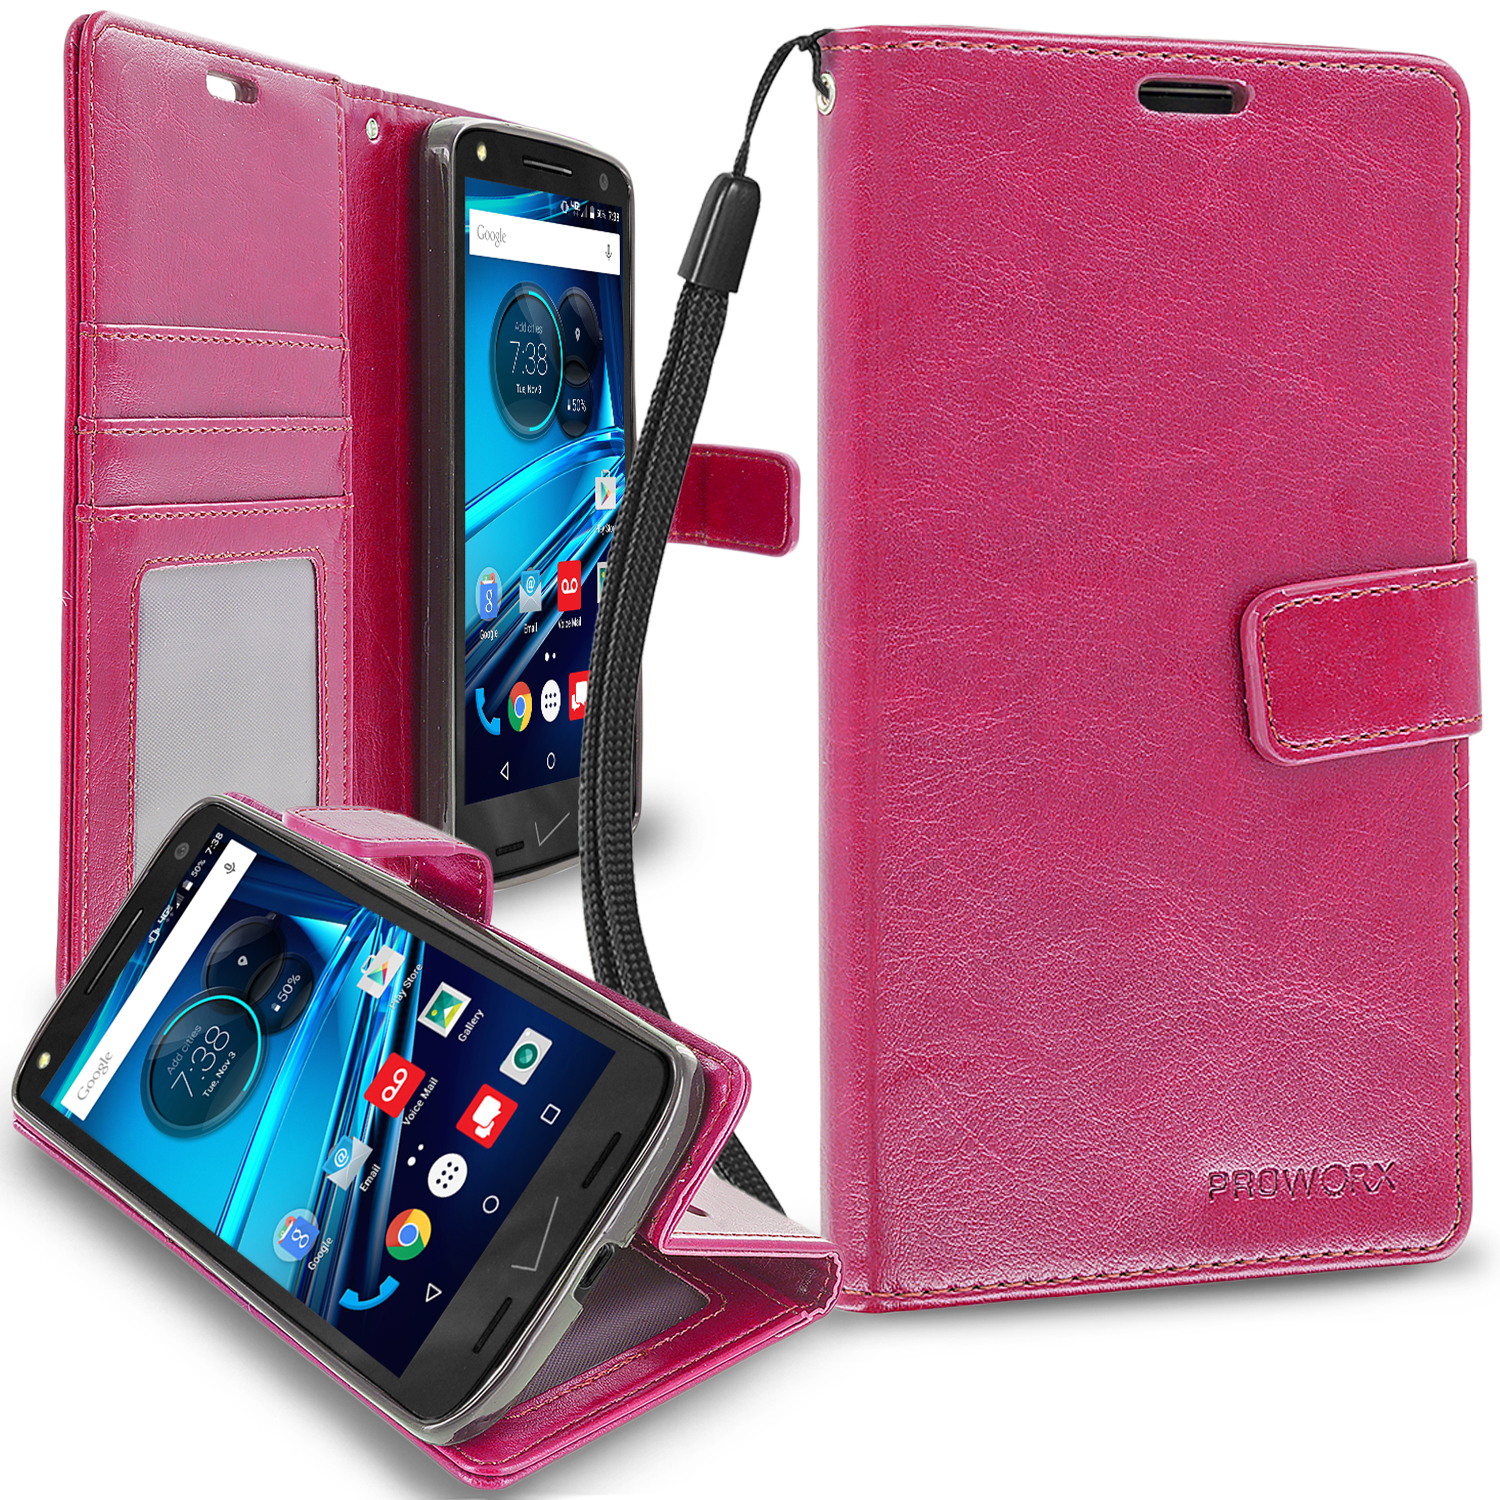 Motorola Droid Turbo 2 Hot Pink ProWorx Wallet Case Luxury PU Leather Case Cover With Card Slots & Stand